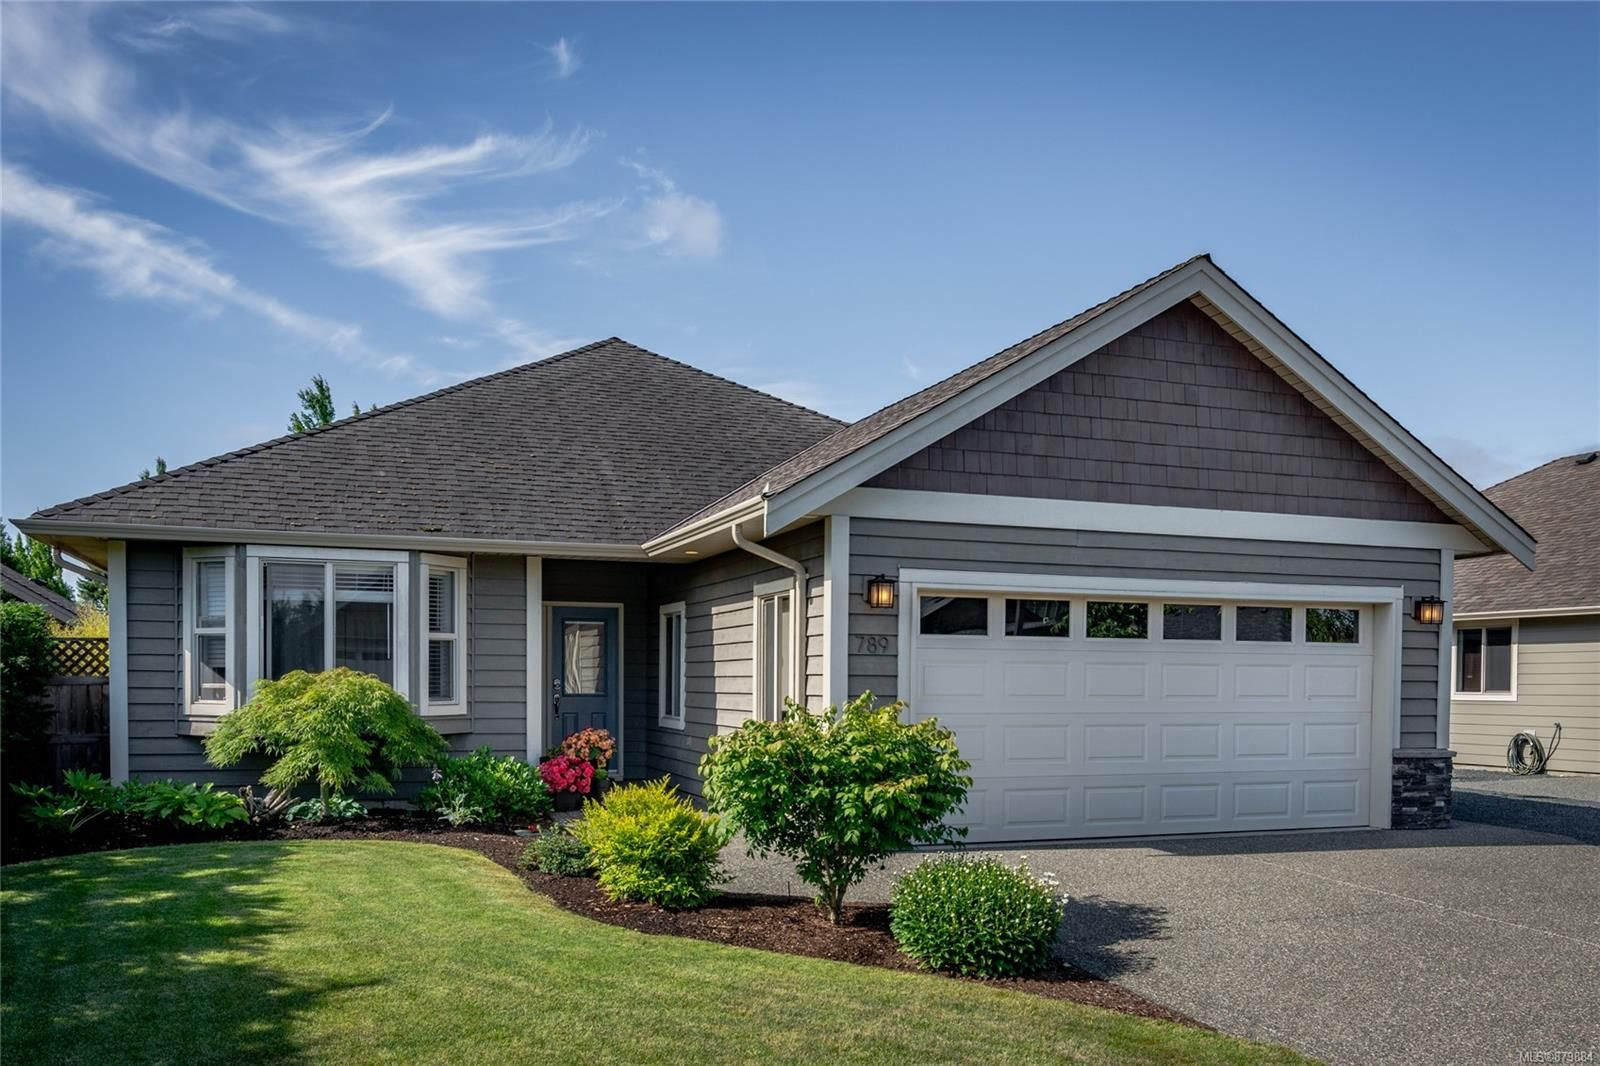 Main Photo: 789 Fletcher Ave in : PQ Parksville House for sale (Parksville/Qualicum)  : MLS®# 879884